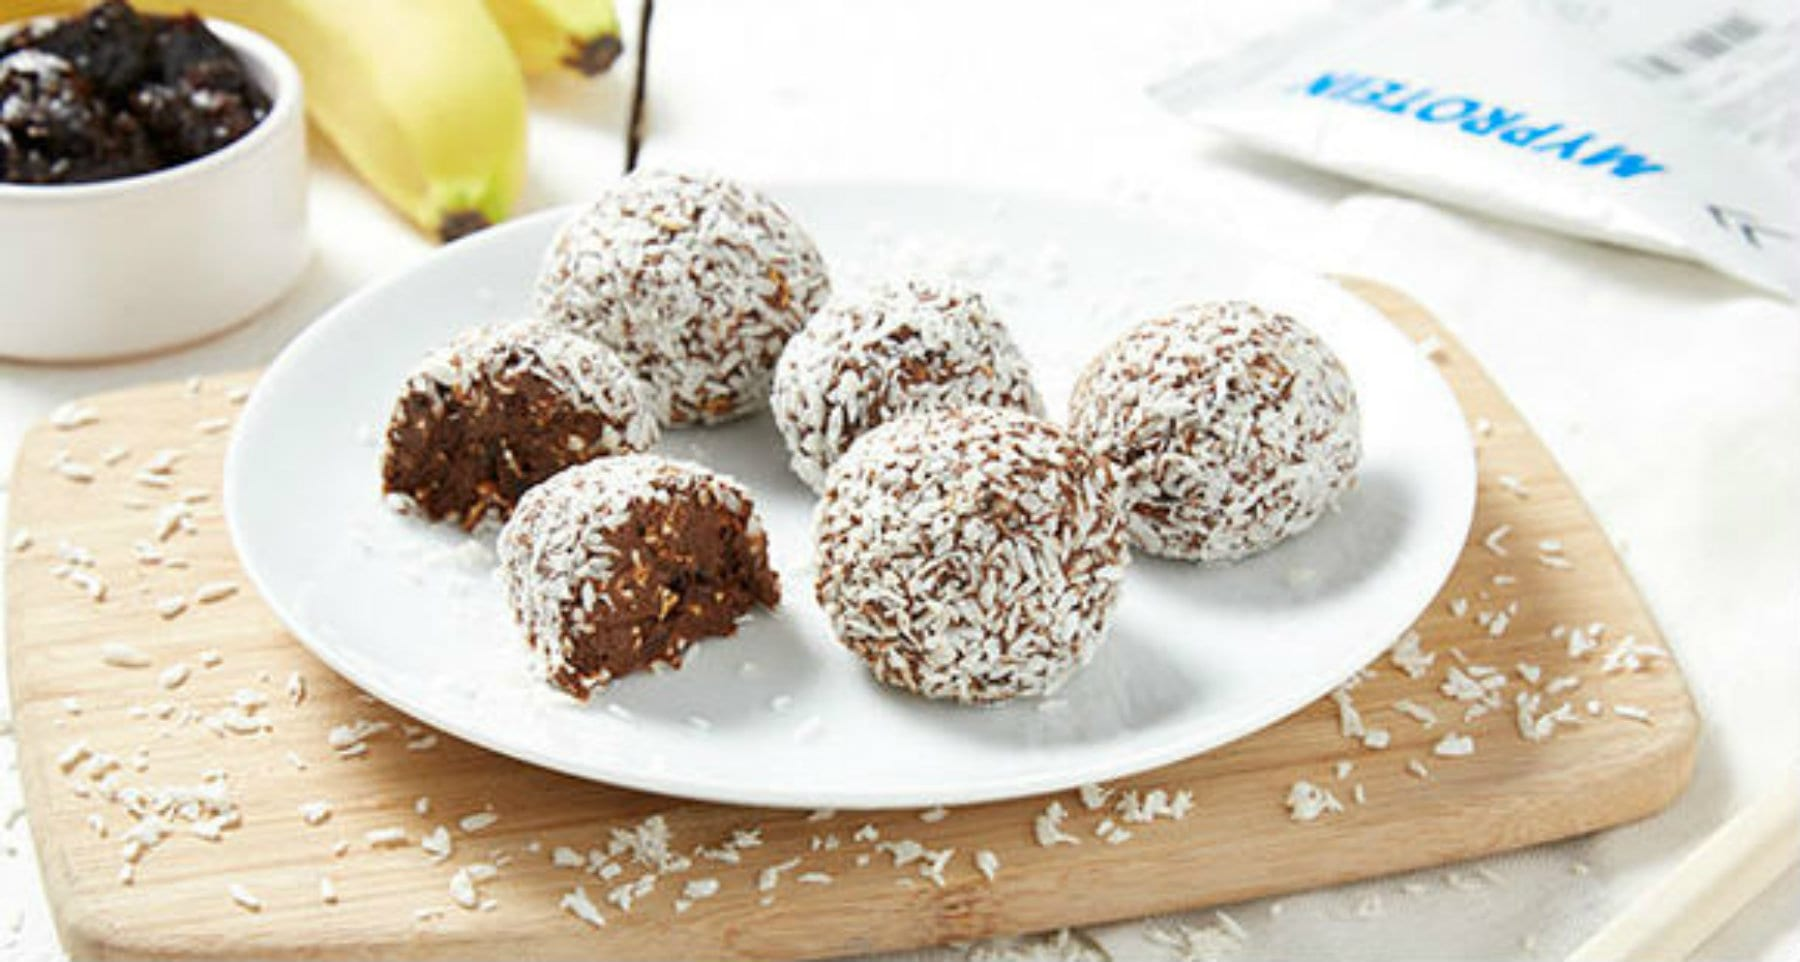 Coconut & Whey Protein Balls | On The Go Snack